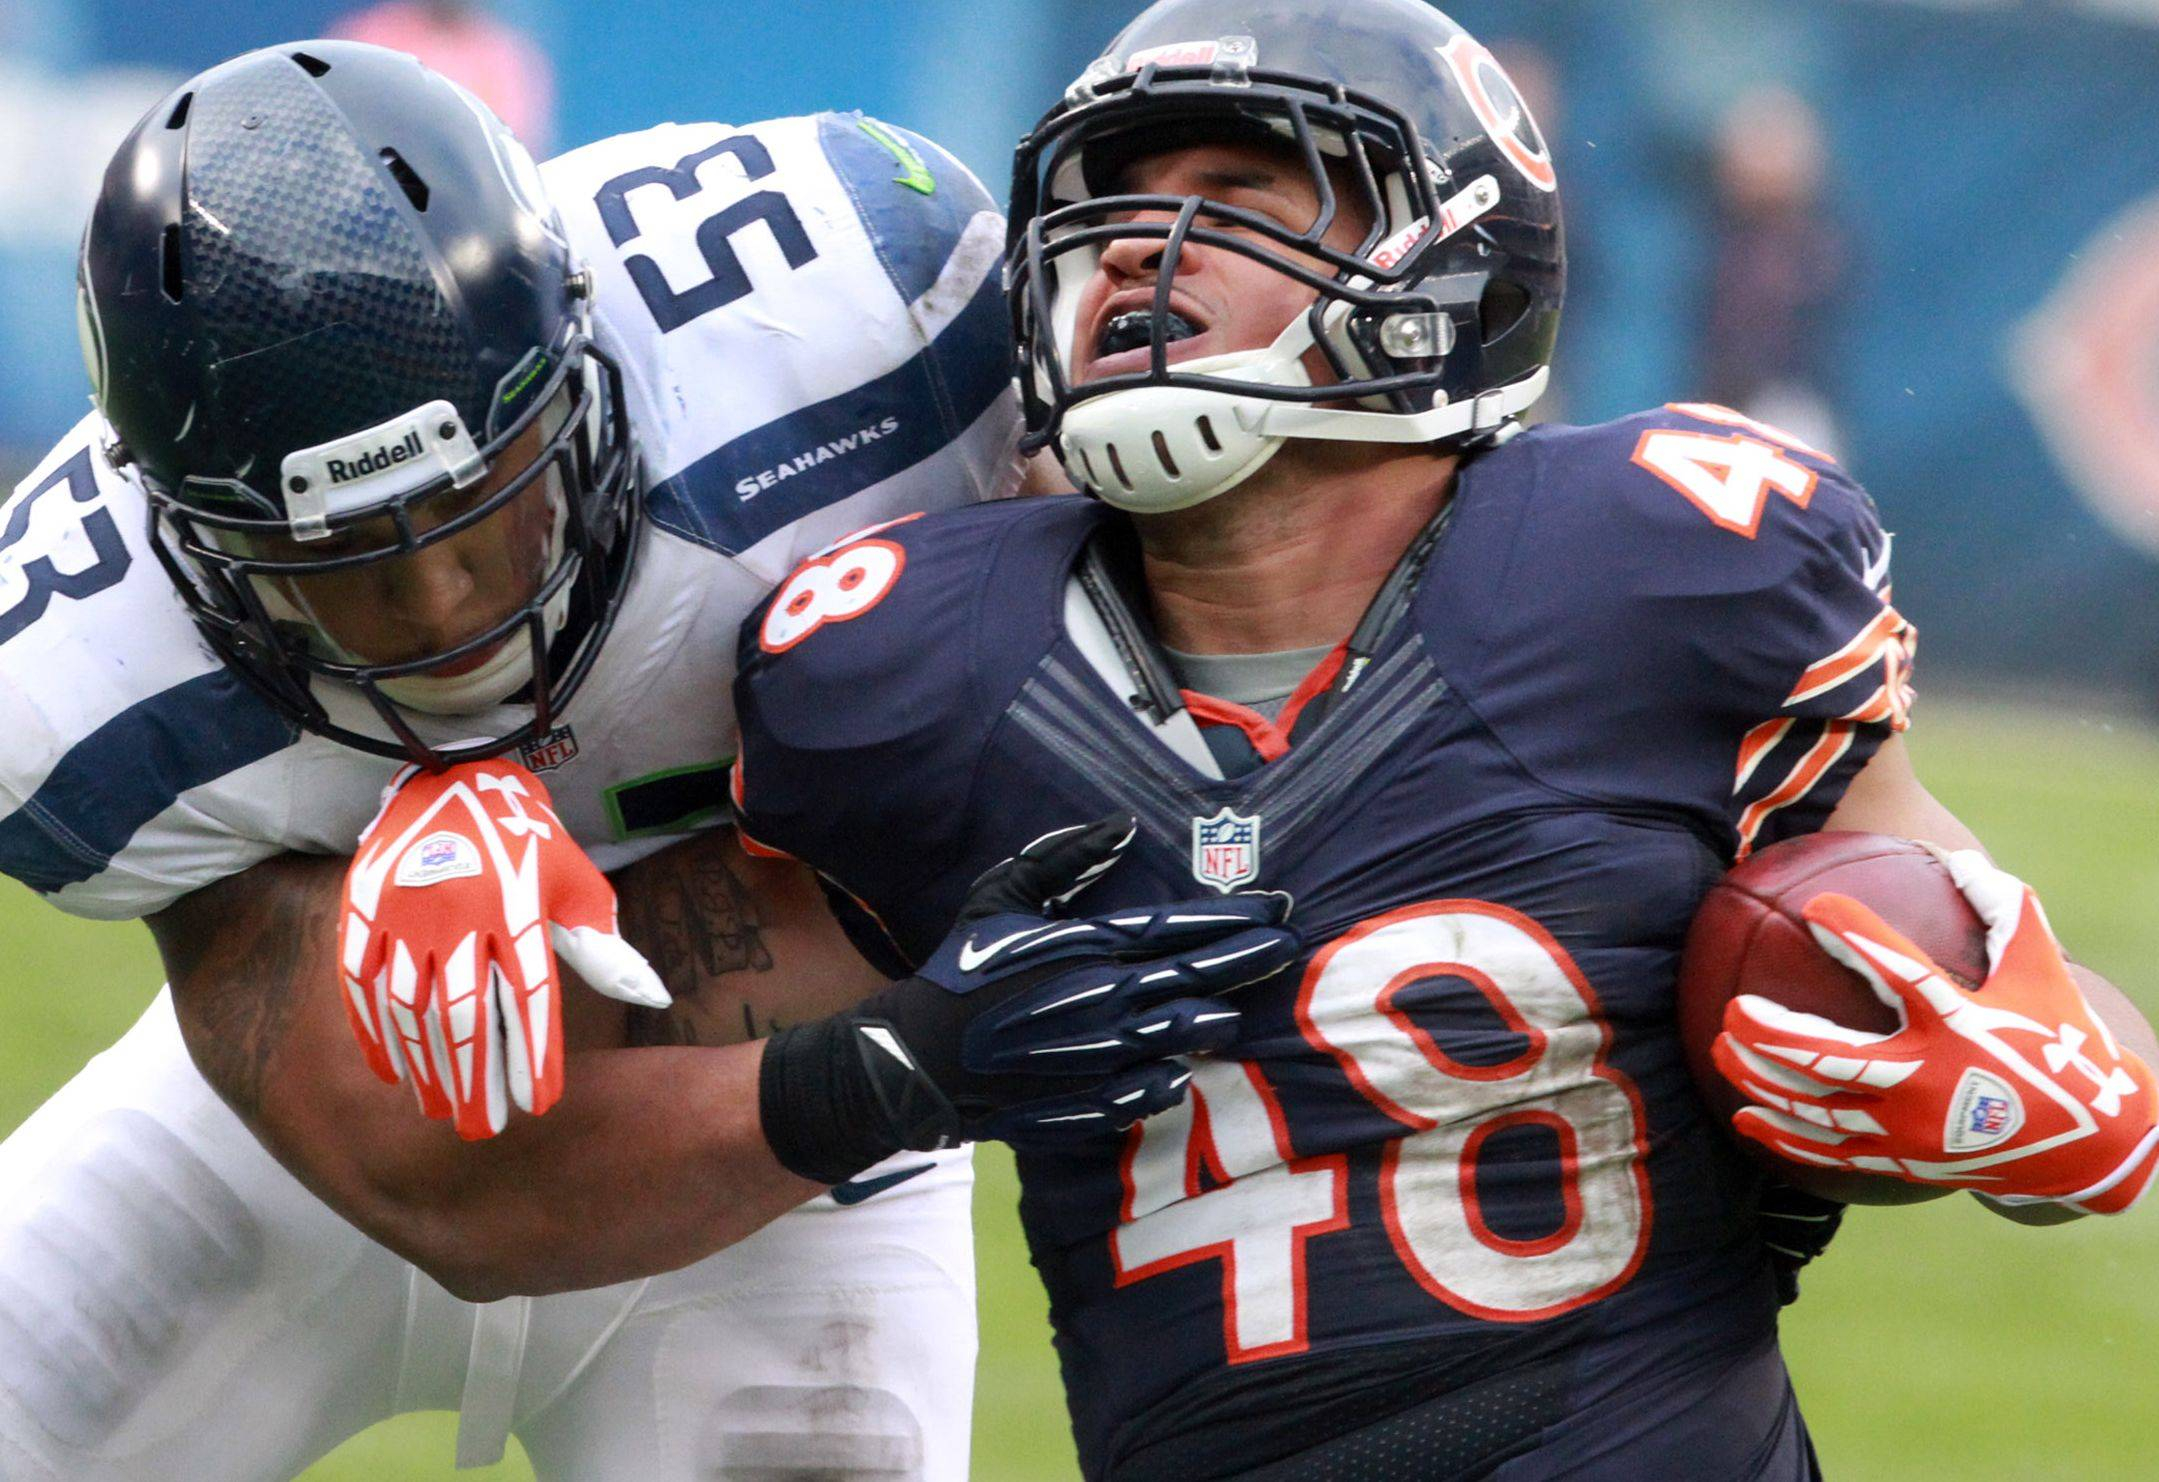 The Bears released fullback Evan Rodriguez on Monday morning. A fourth-round draft pick in 2012, Rodriguez played in 12 games last season.